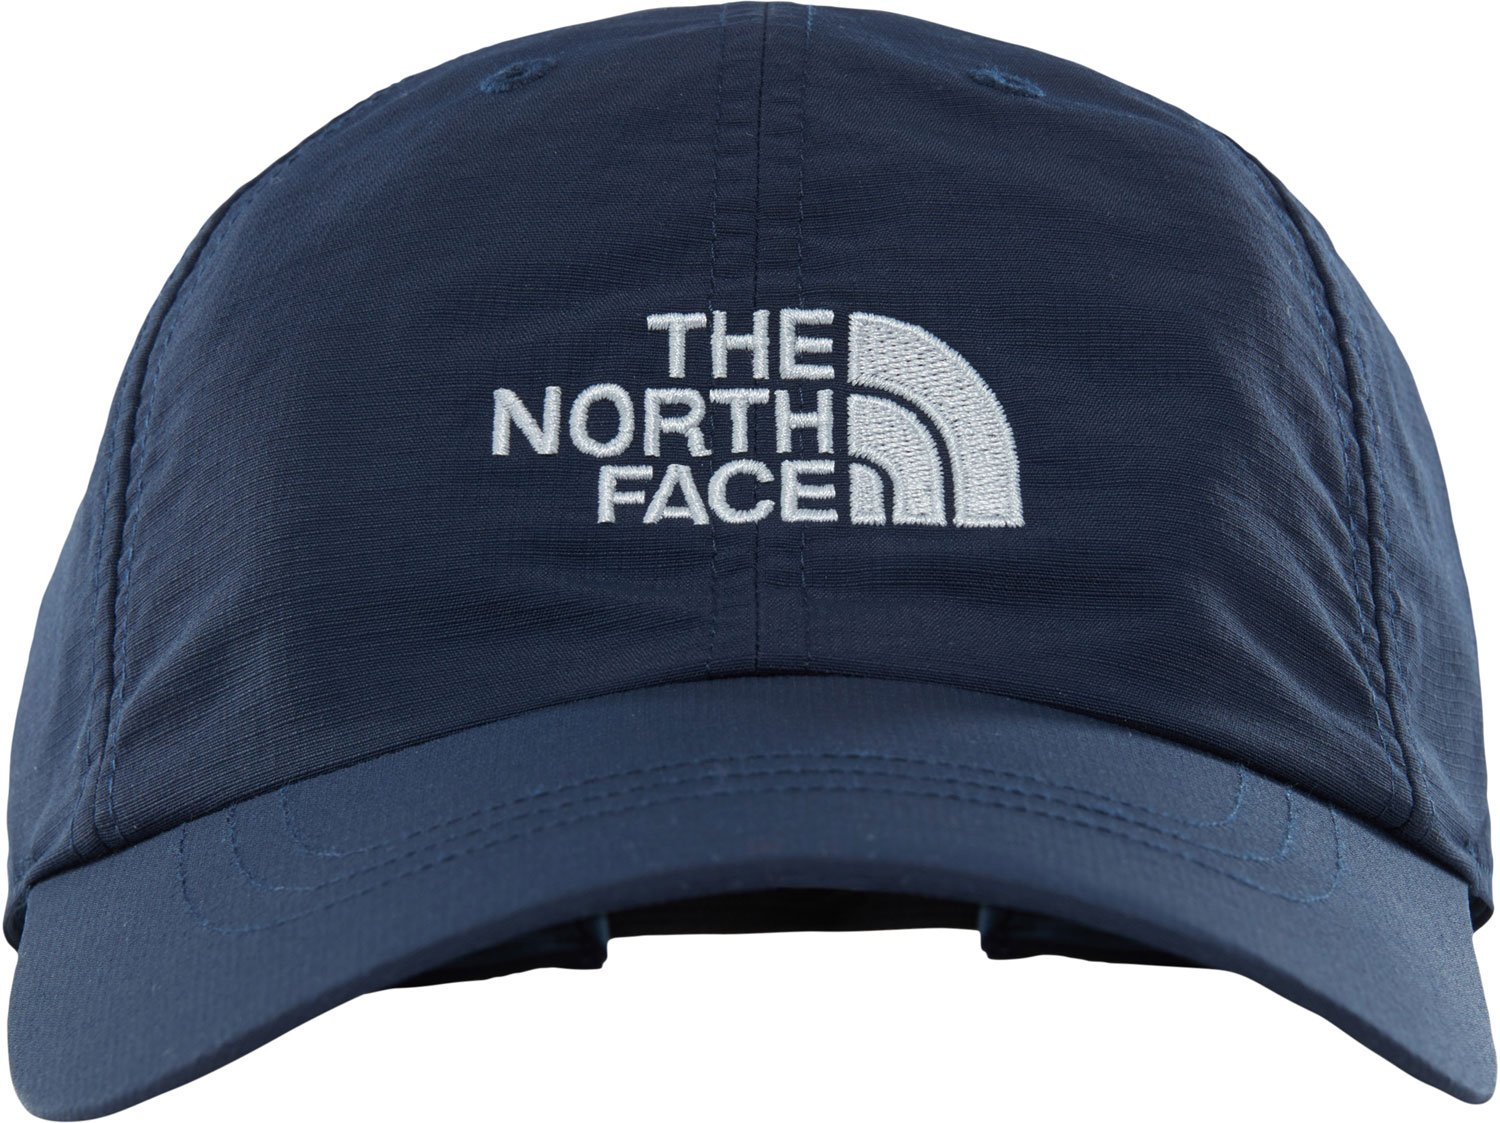 The North Face Cf7w Gorra, Unisex Adulto: Amazon.es: Deportes y aire libre